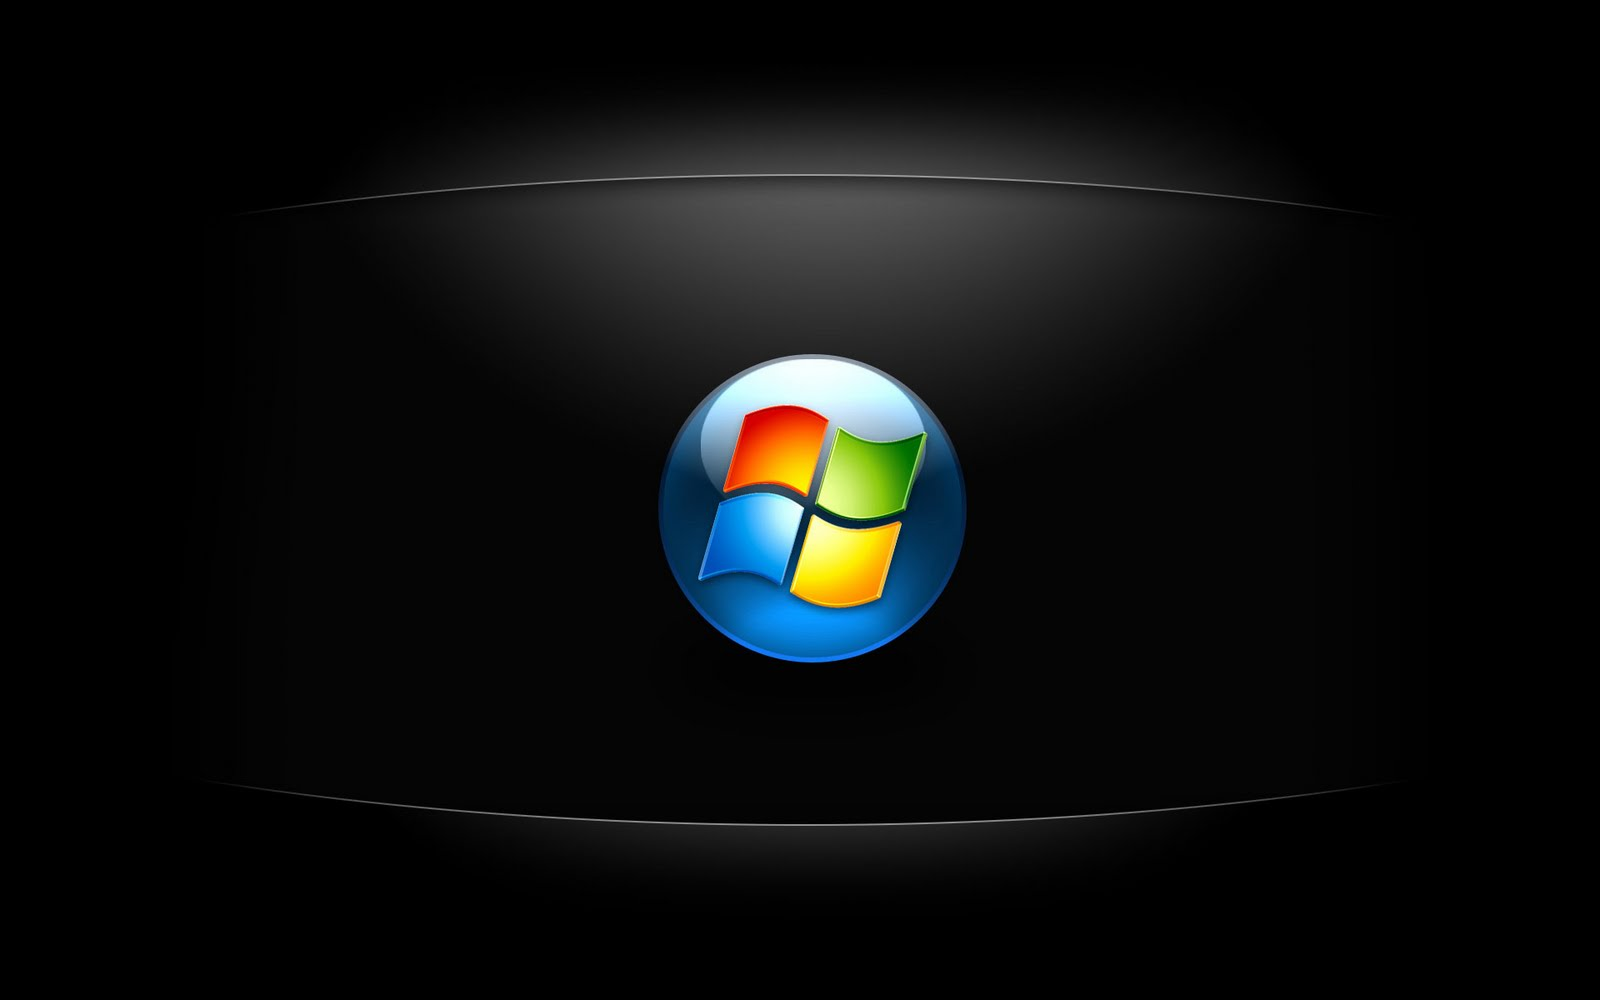 wallpaper windows vista gratis: